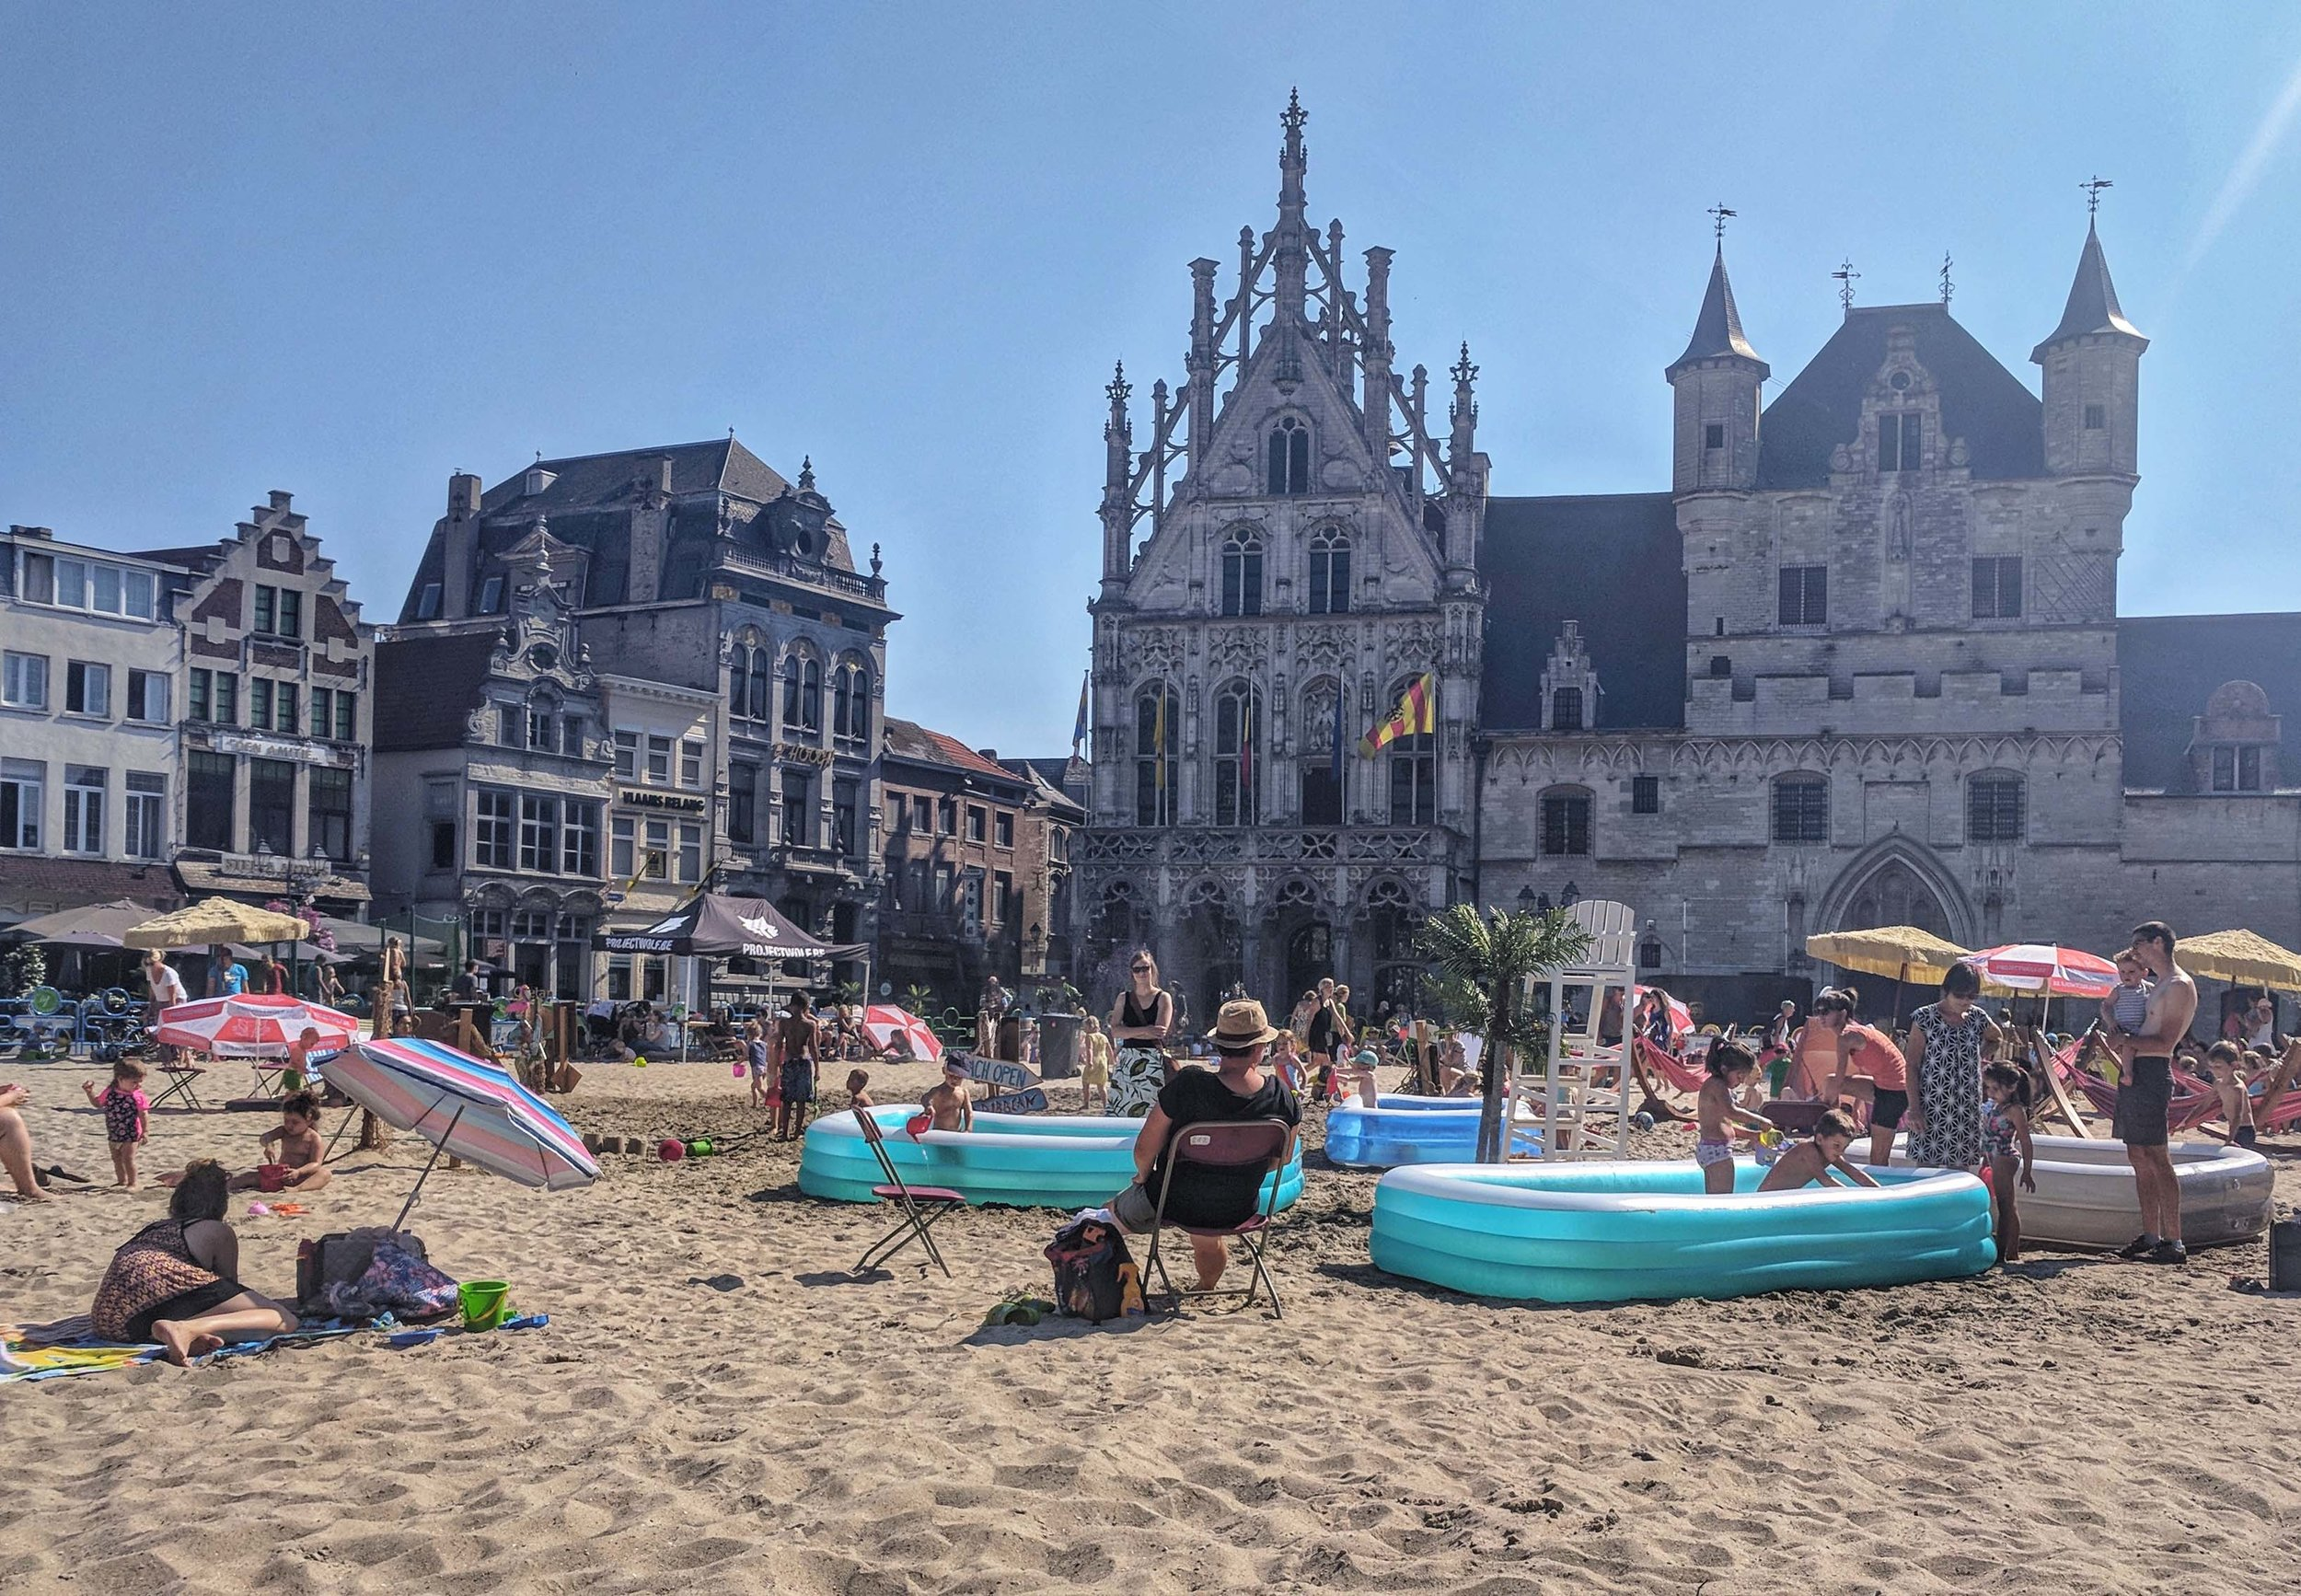 The temporary beach in the city square